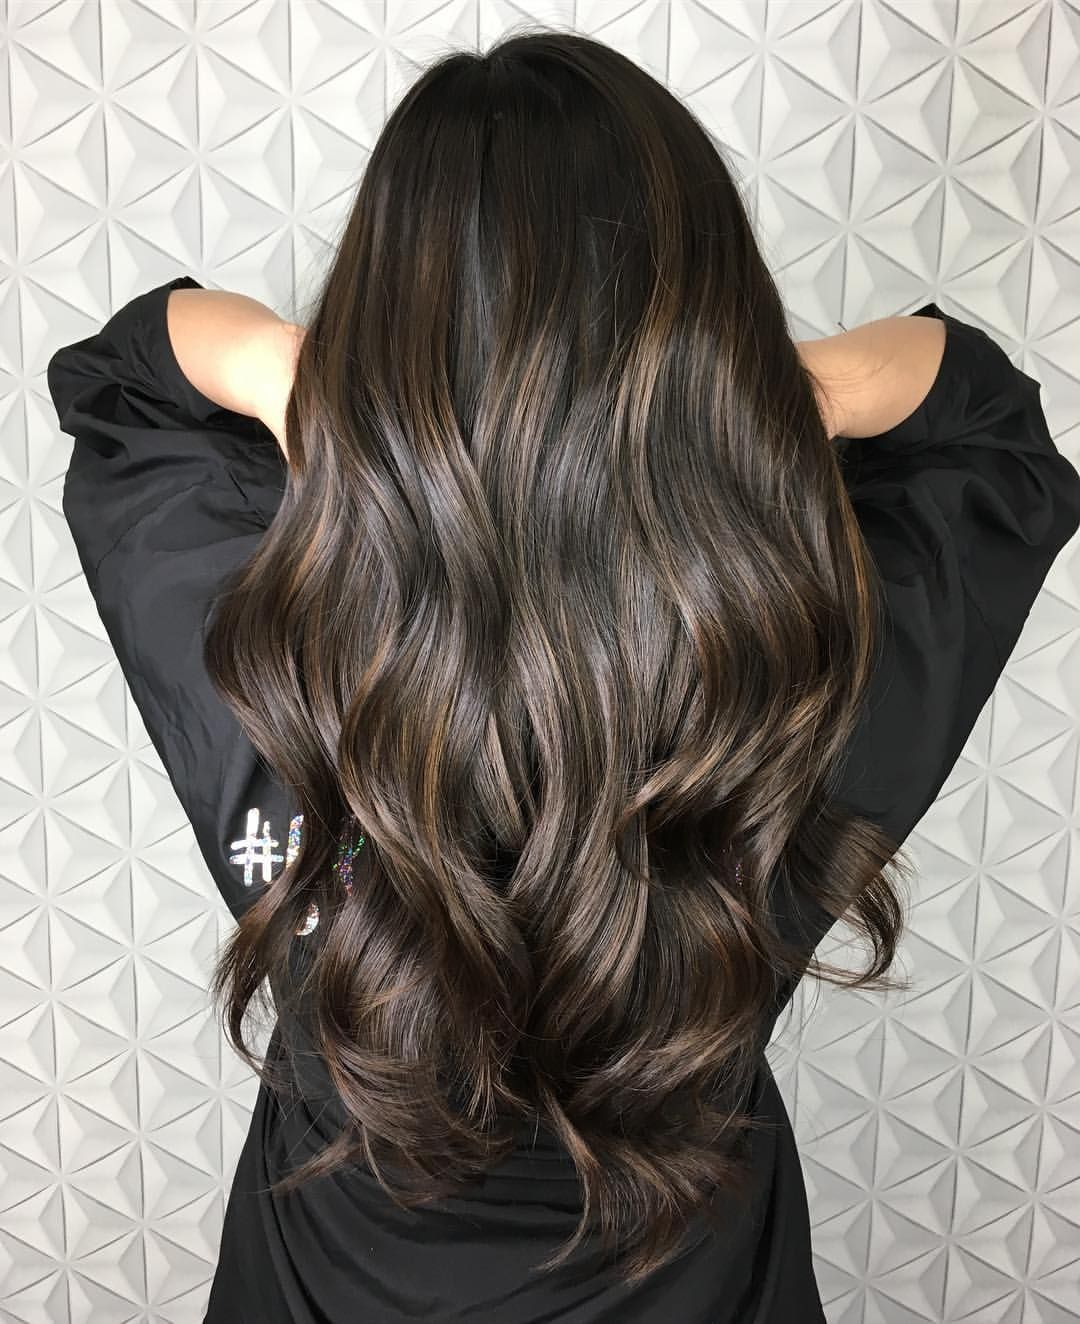 """Photo of Seattle Balayage Hairstylist on Instagram: """"Ash brown is seriously my favorite color to do! I just love how effortless it looks with dark hair. Kelsey came in wanting a Balayage but…"""""""